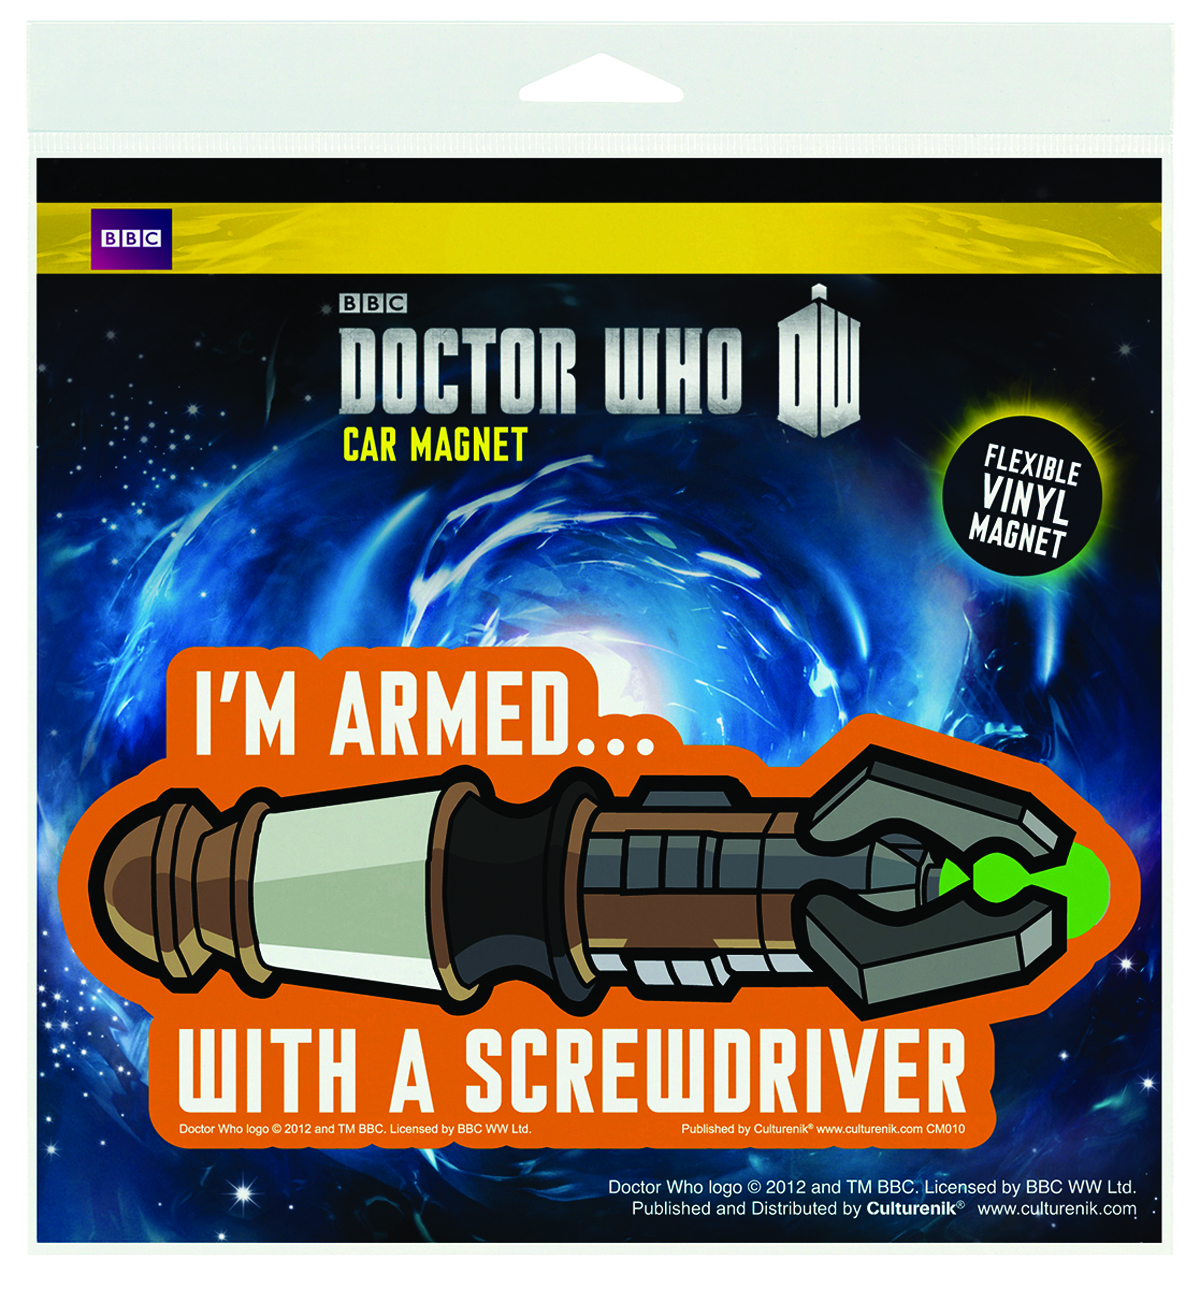 DOCTOR WHO WHOVIAN FLEX CAR MAGNET 3PK